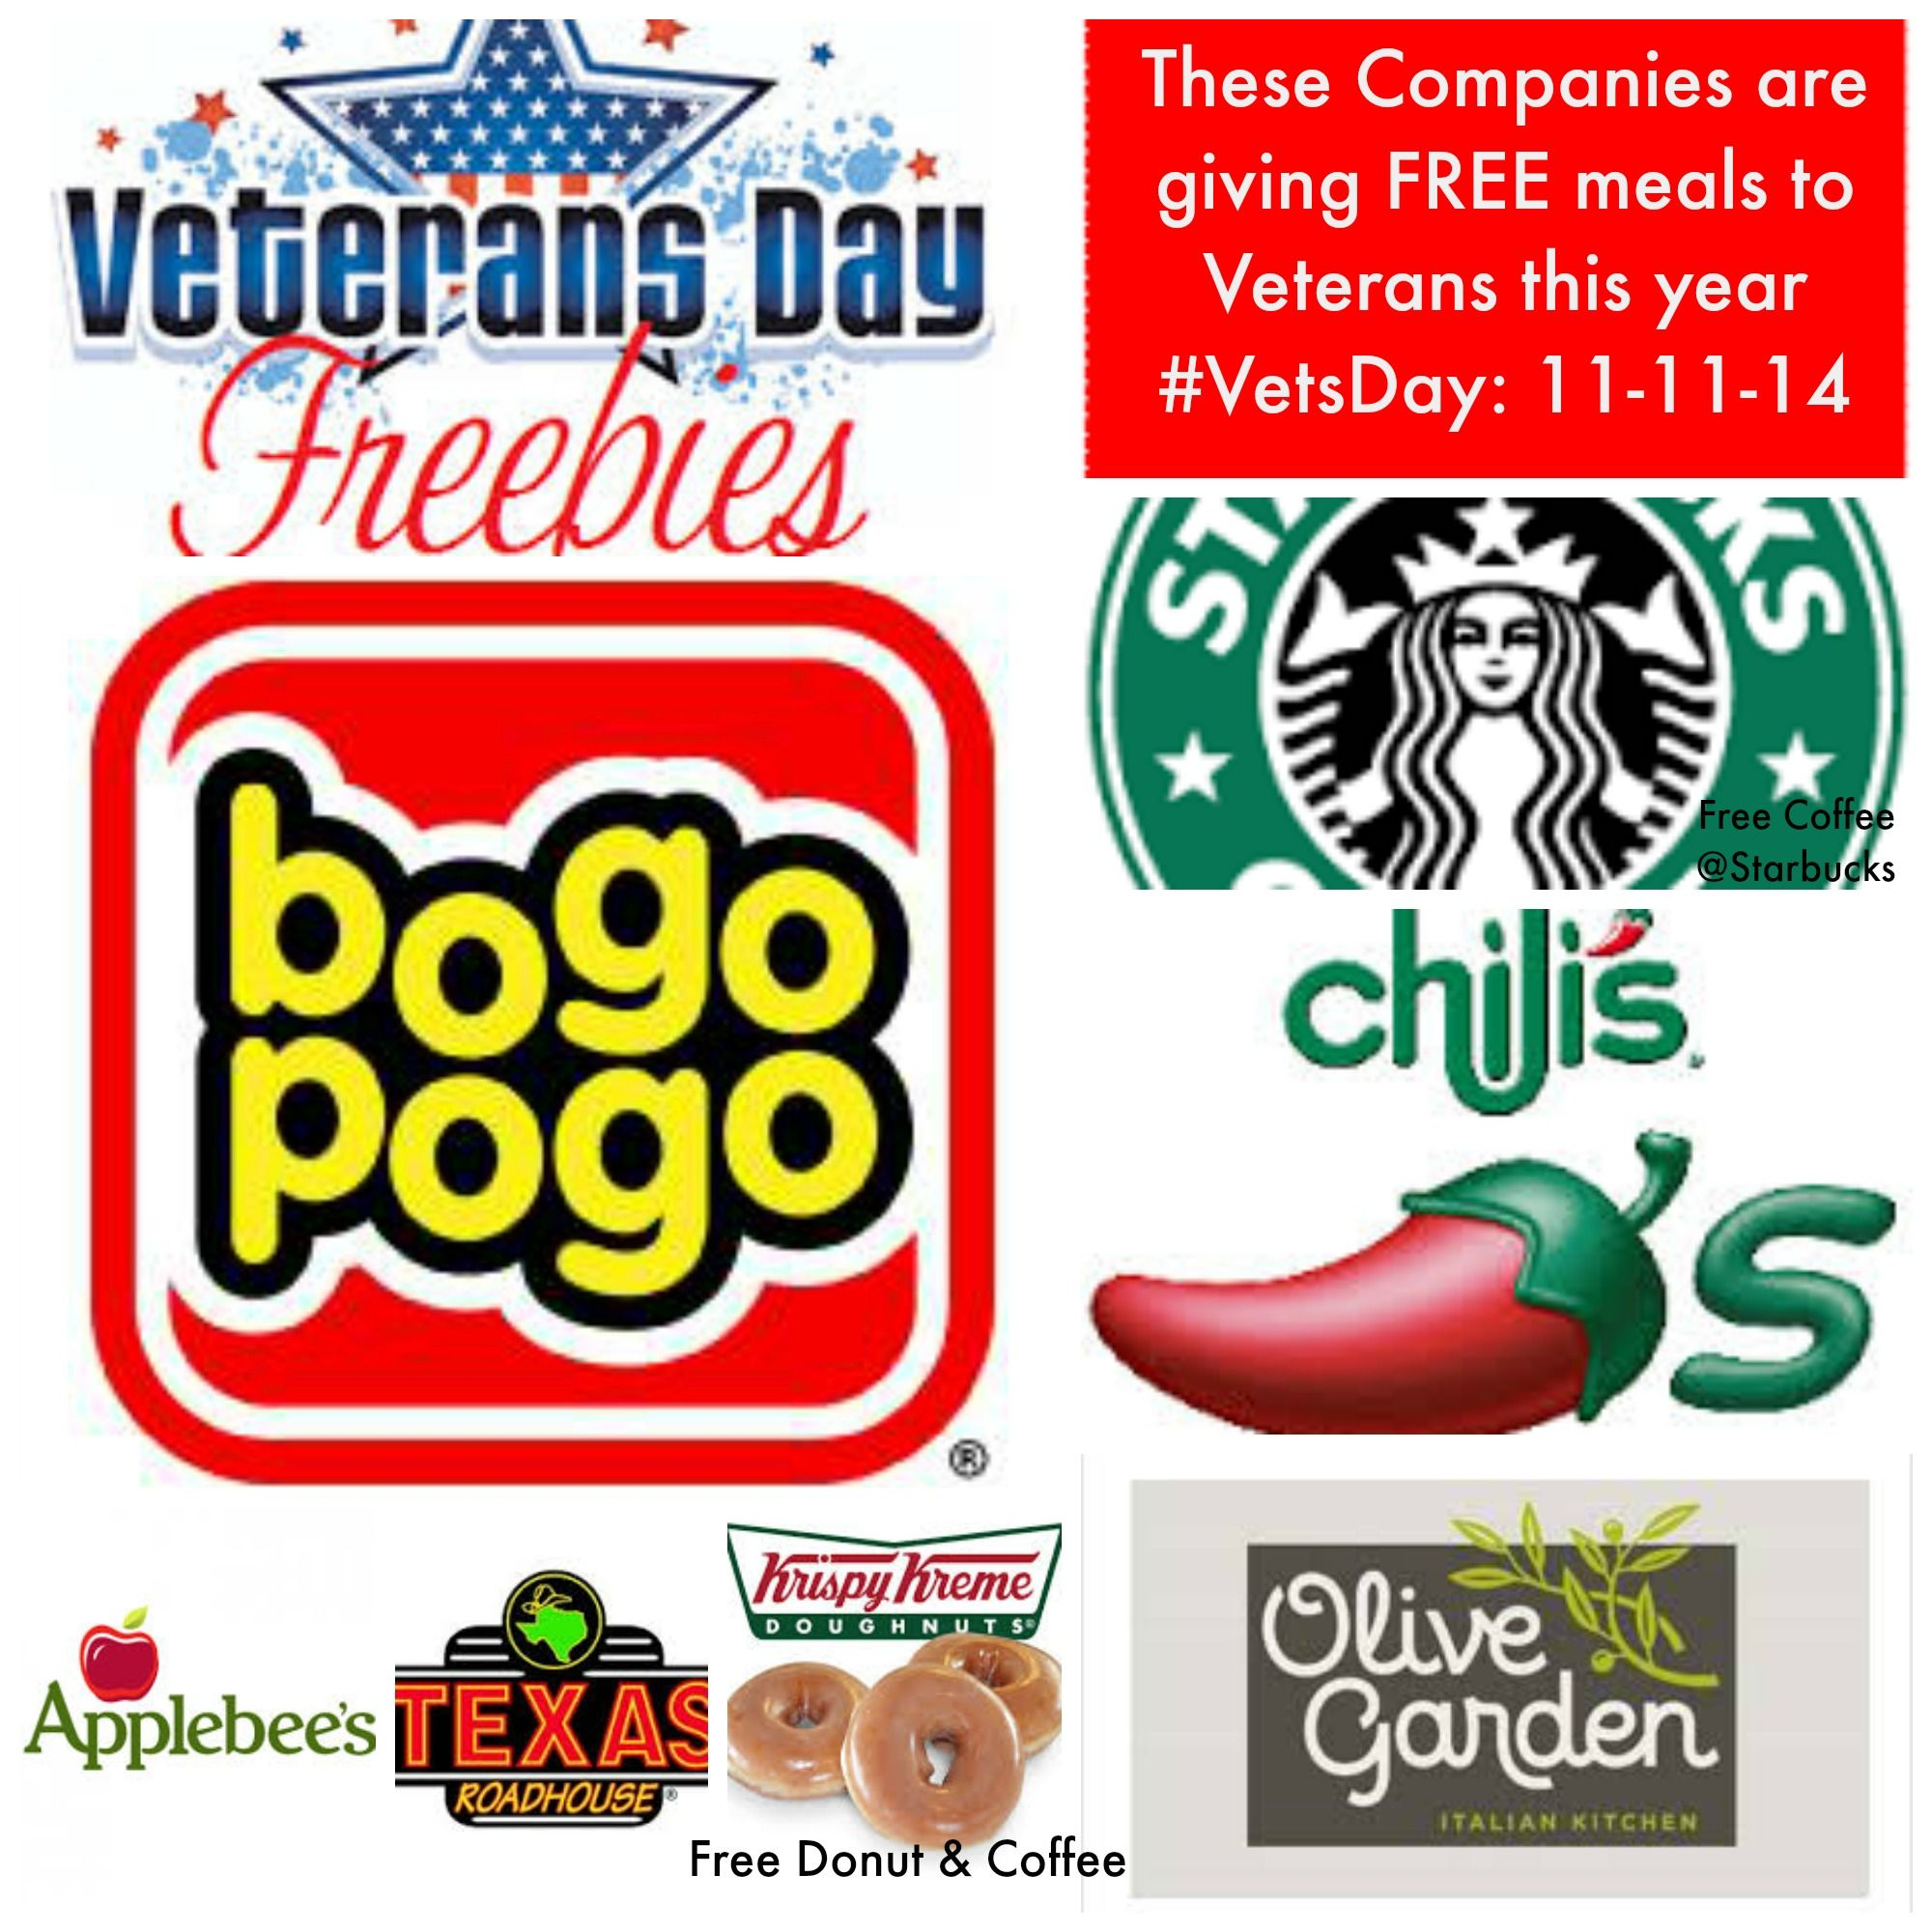 To those who served. Thank you! VetsDay *Do you consume